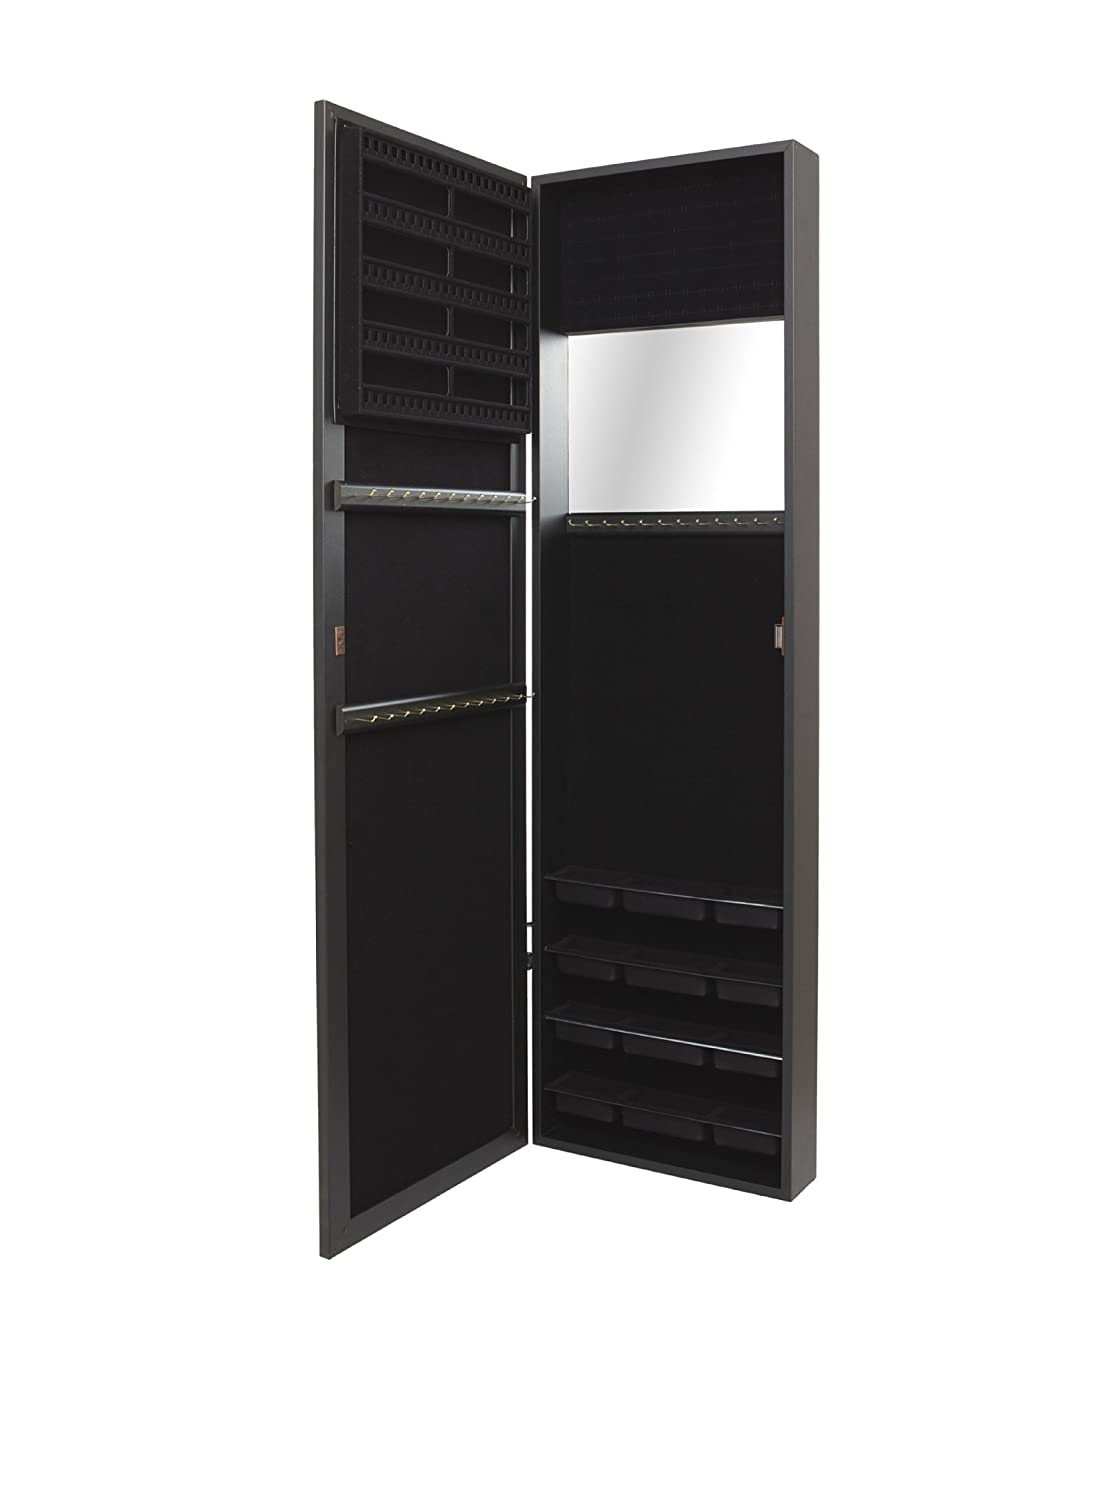 Amazoncom Plaza Astoria WallDoorMount Jewelry Armoire Black